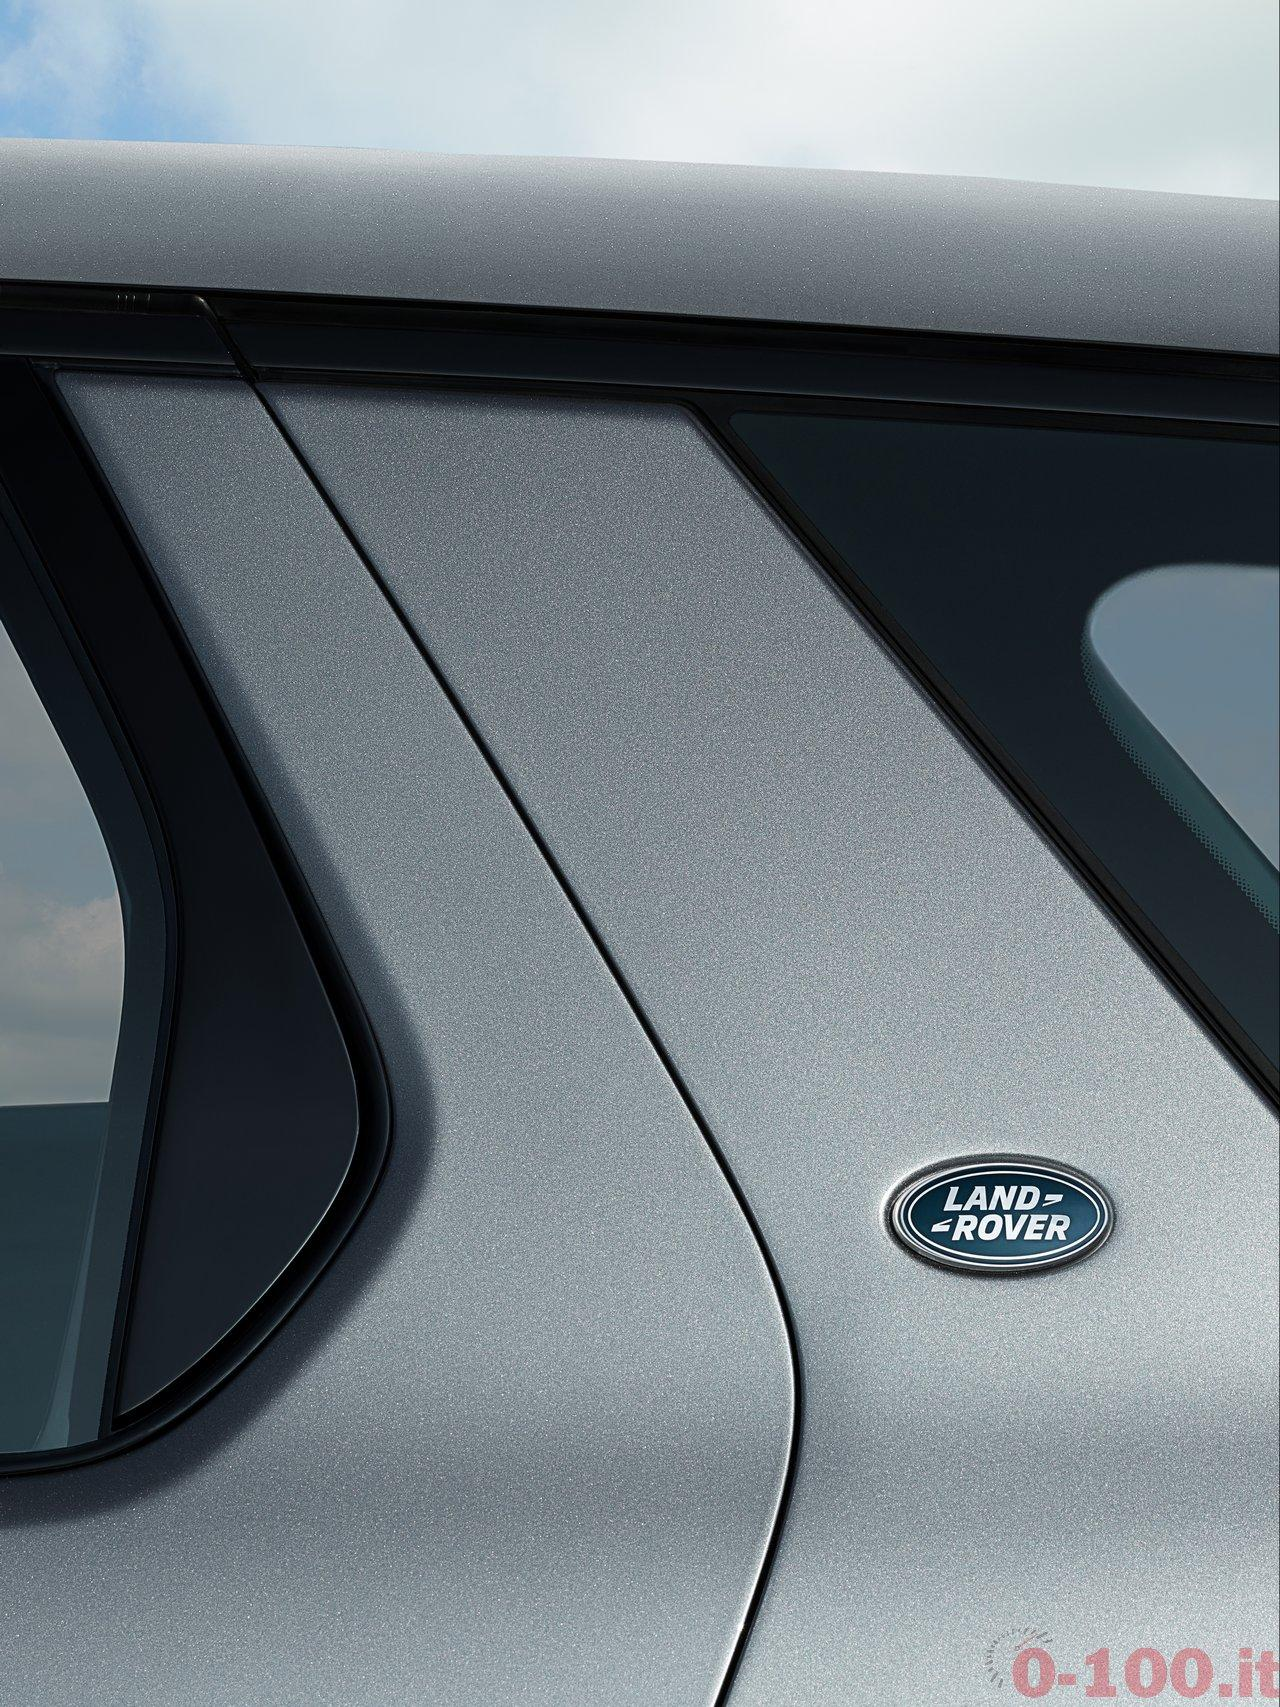 land-rover-discovery-sport_0-100_36